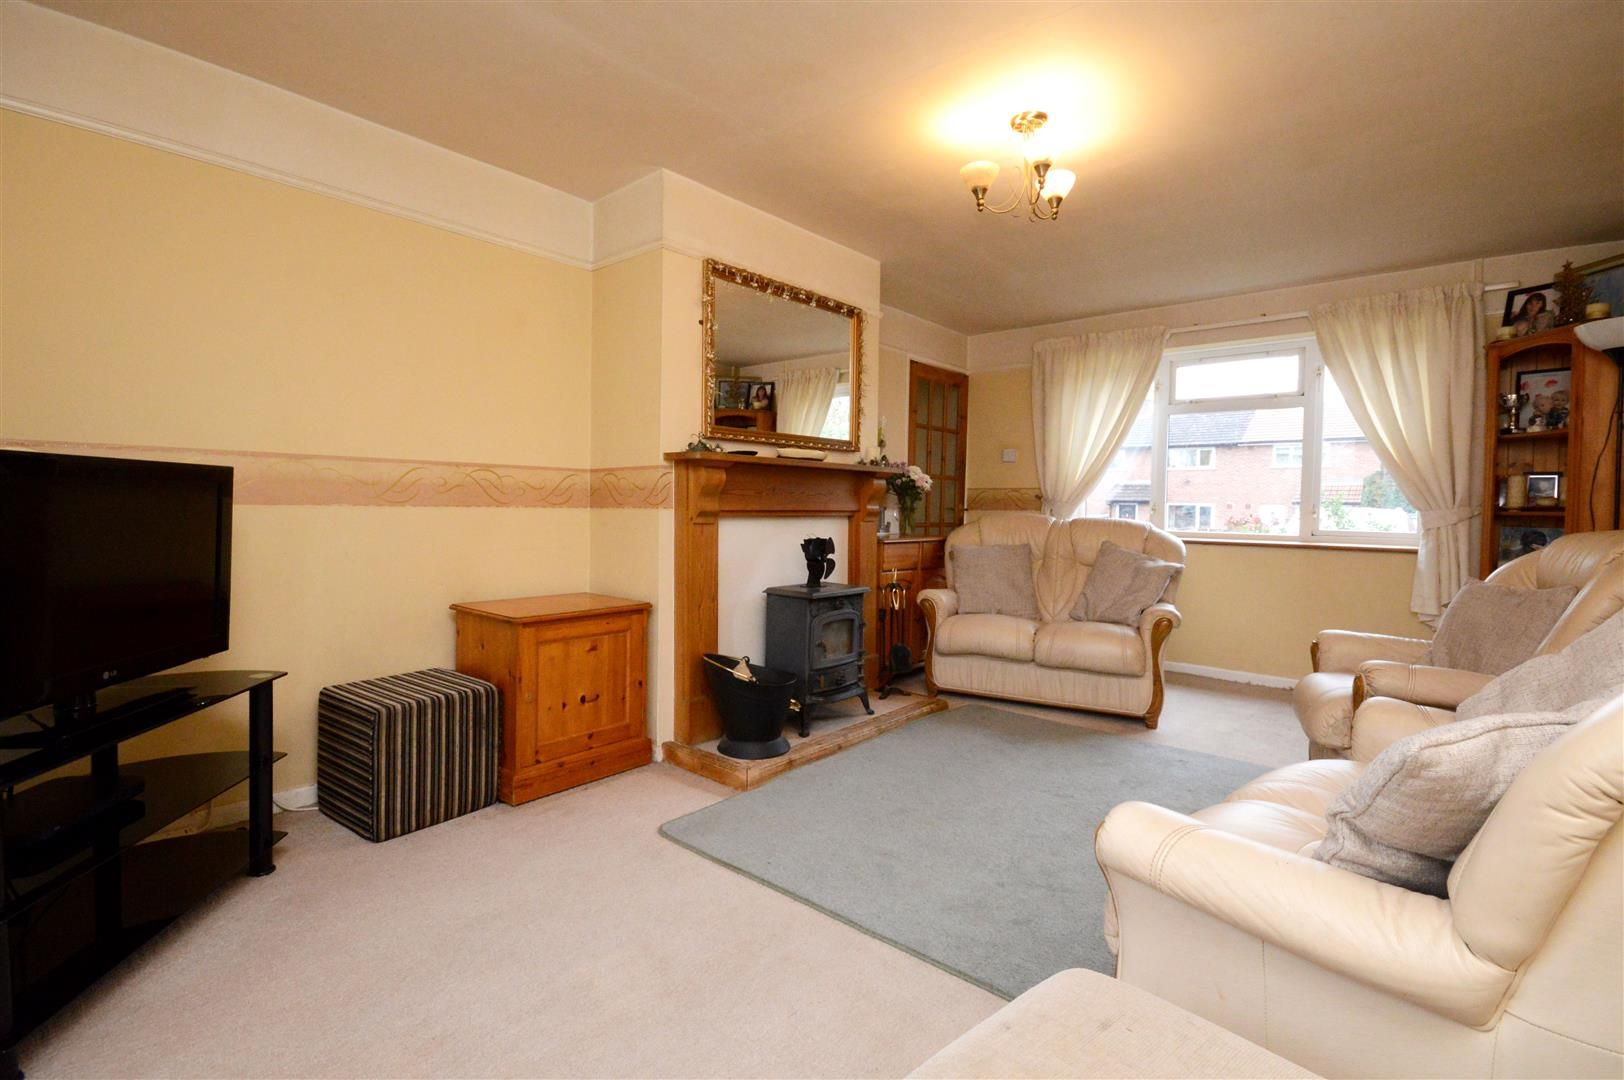 3 bed terraced for sale in Weobley 4